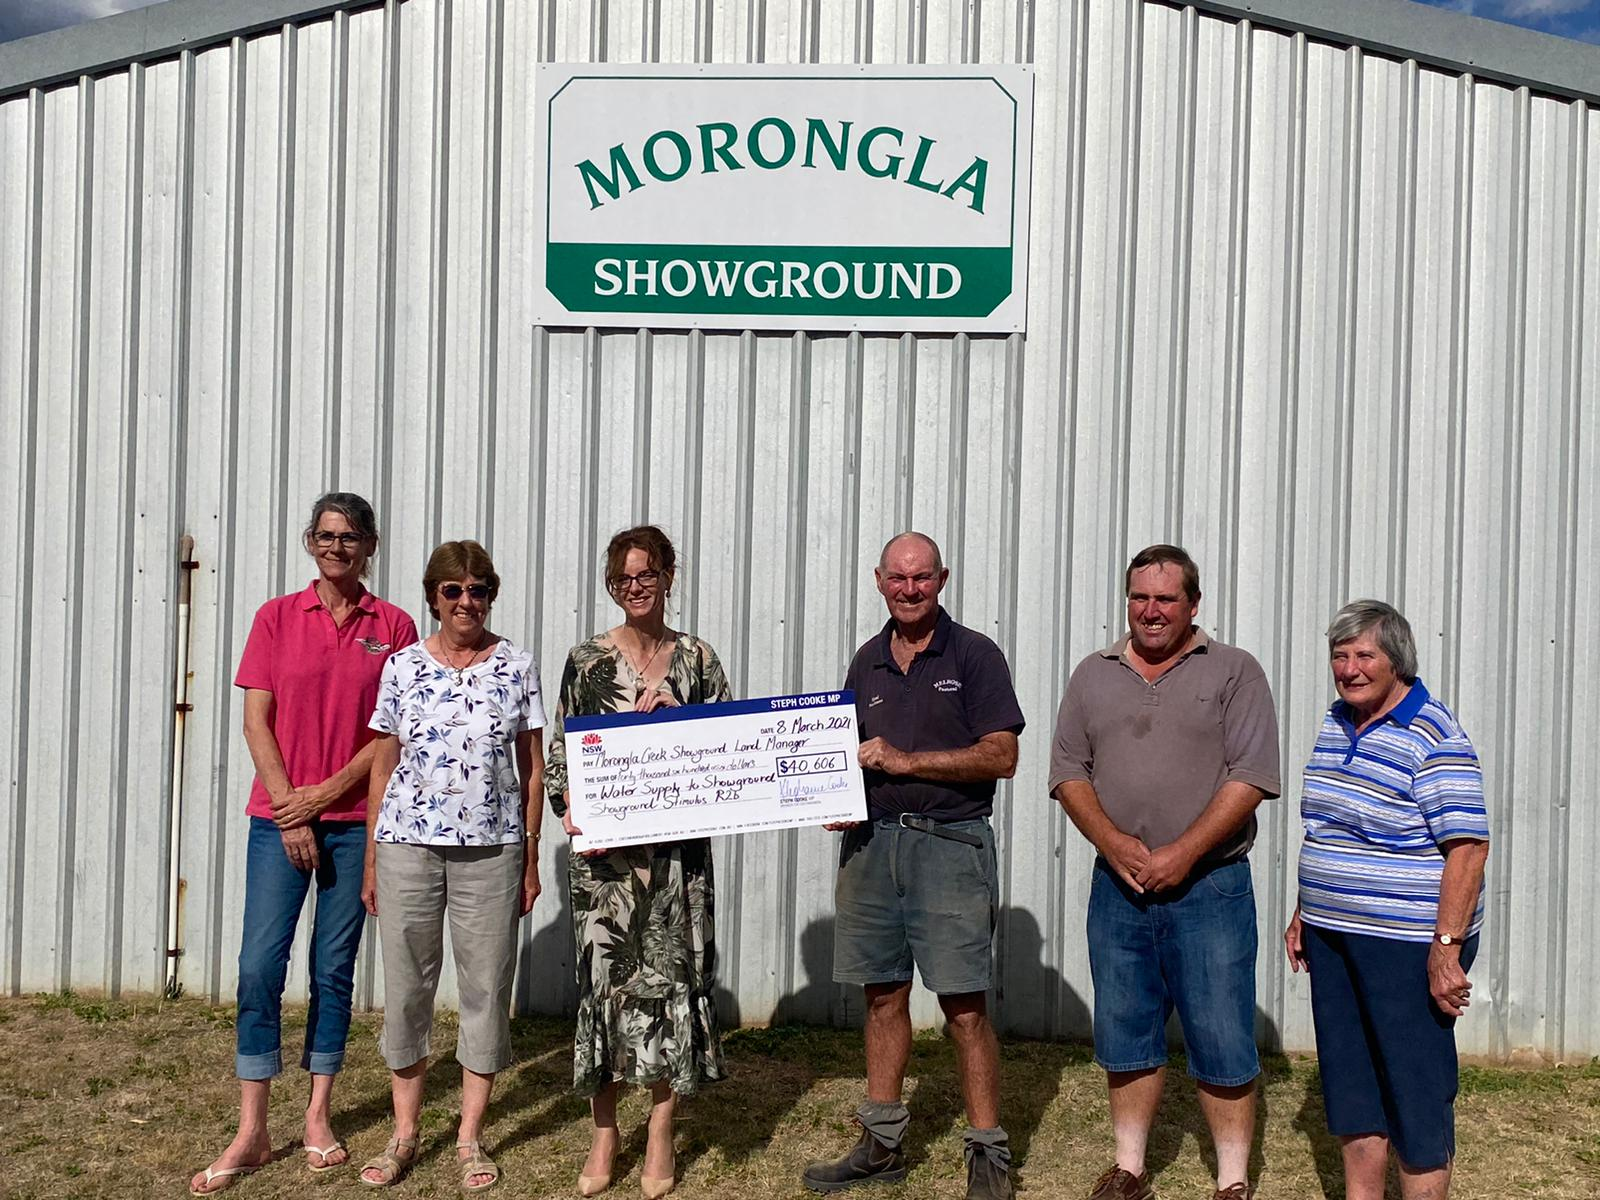 Lyn Harvey, Julie Whitby, Steph Cooke MP, Graham Wallace, David Langfield and Barbara Langfield stand in front of a tin shed an hold a cheque.